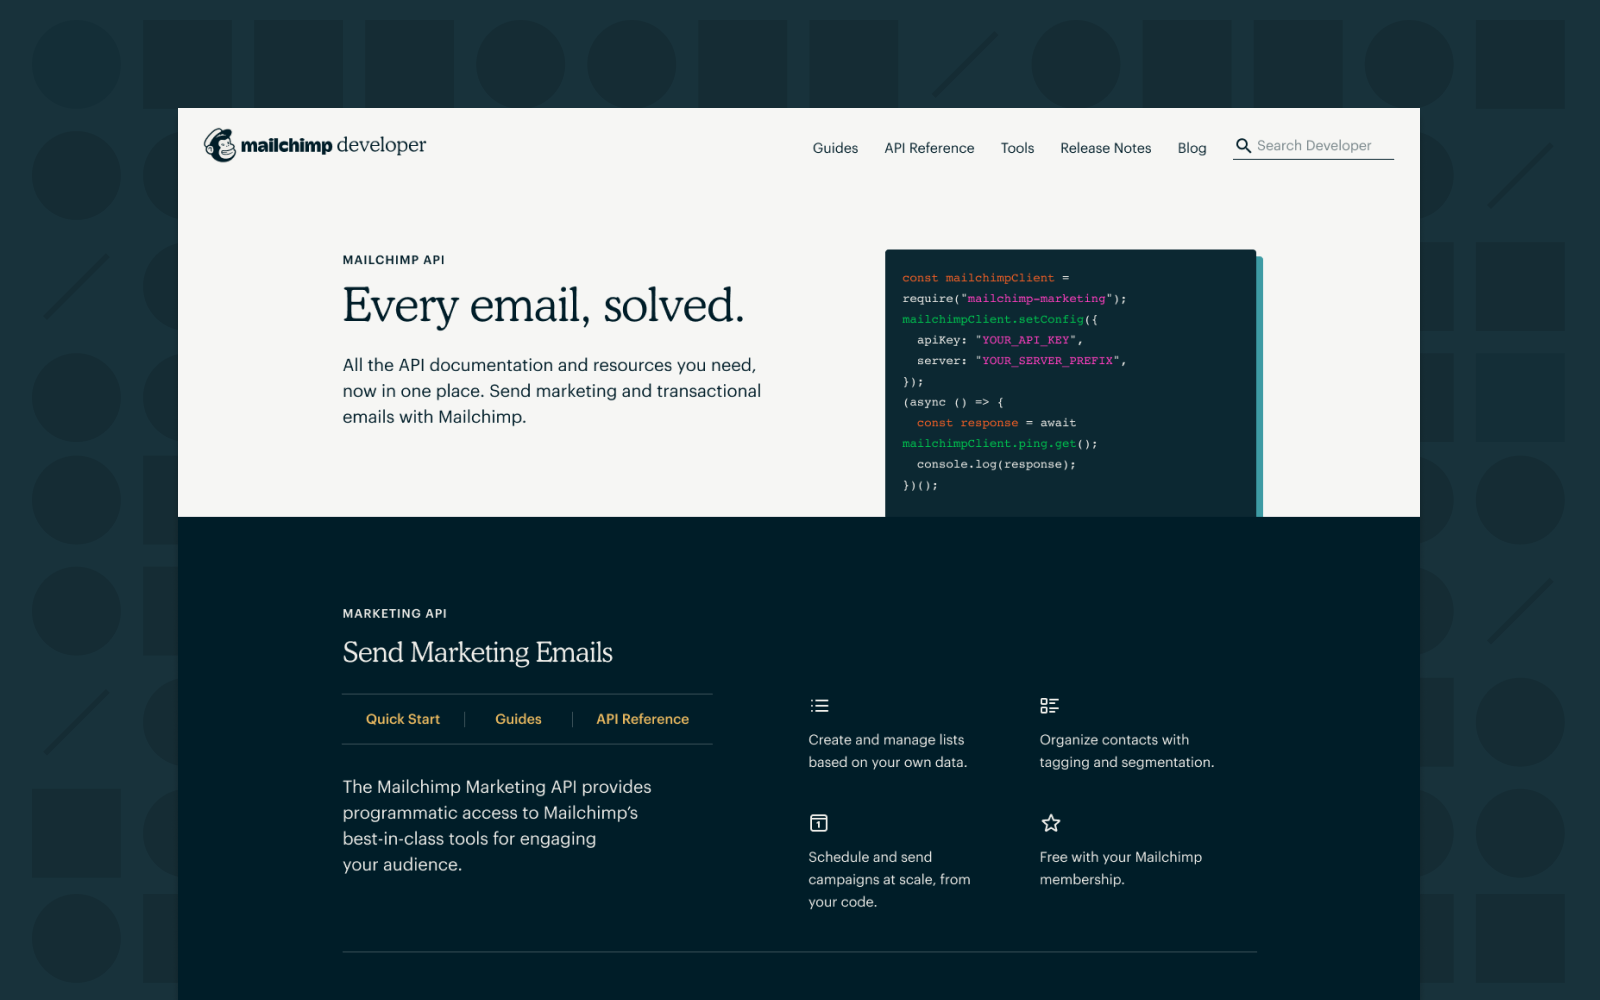 Desktop and mobile breakpoint of the redesigned Mailchimp Developer experience.